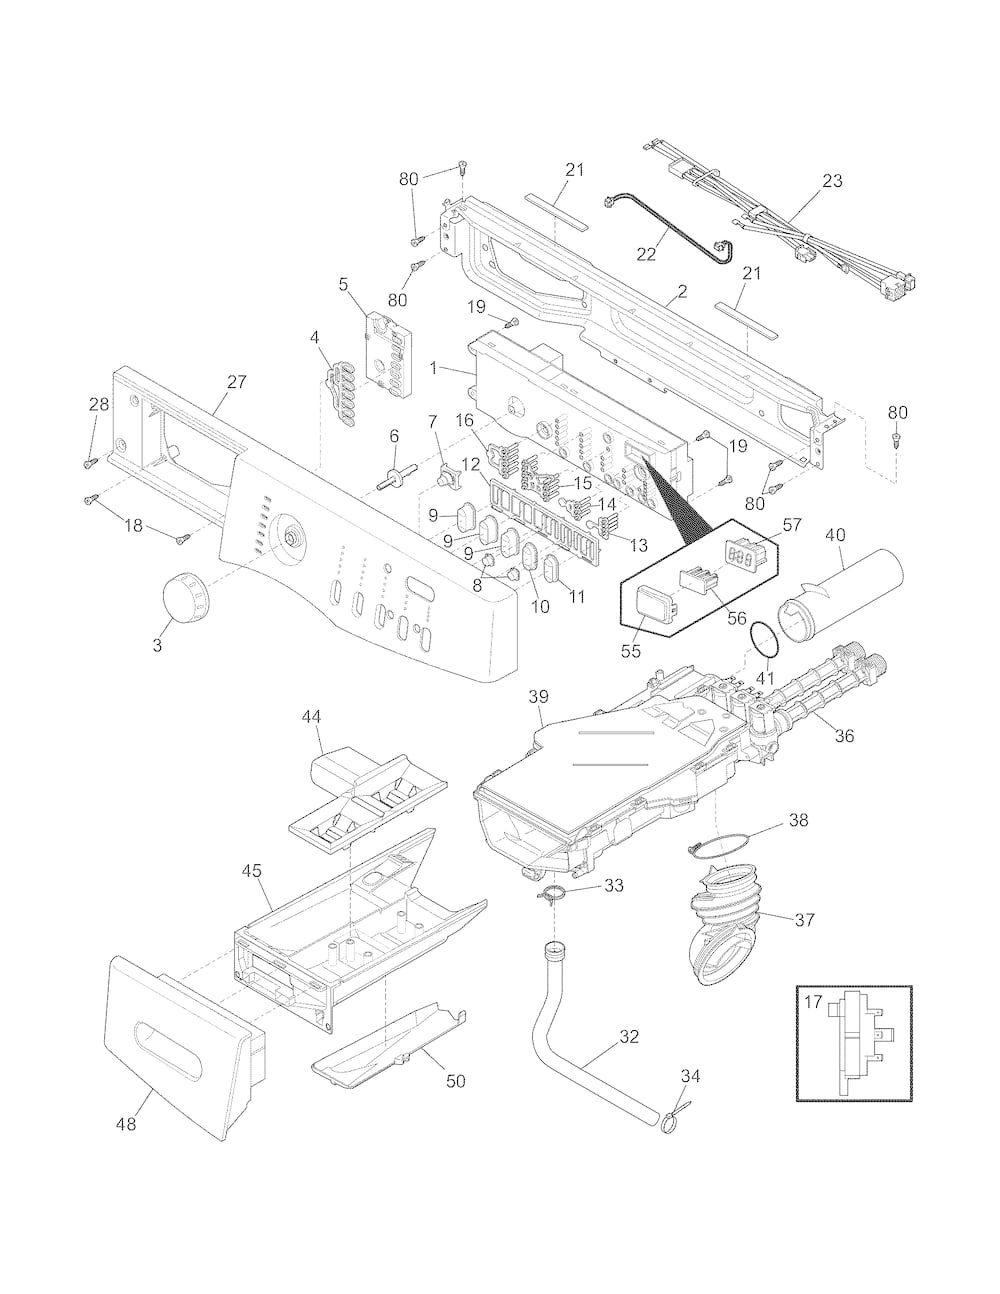 Frigidaire Front Load Washer Parts | Model Fafw3574Kn0 | Sears within Frigidaire Front Load Washer Parts Diagram